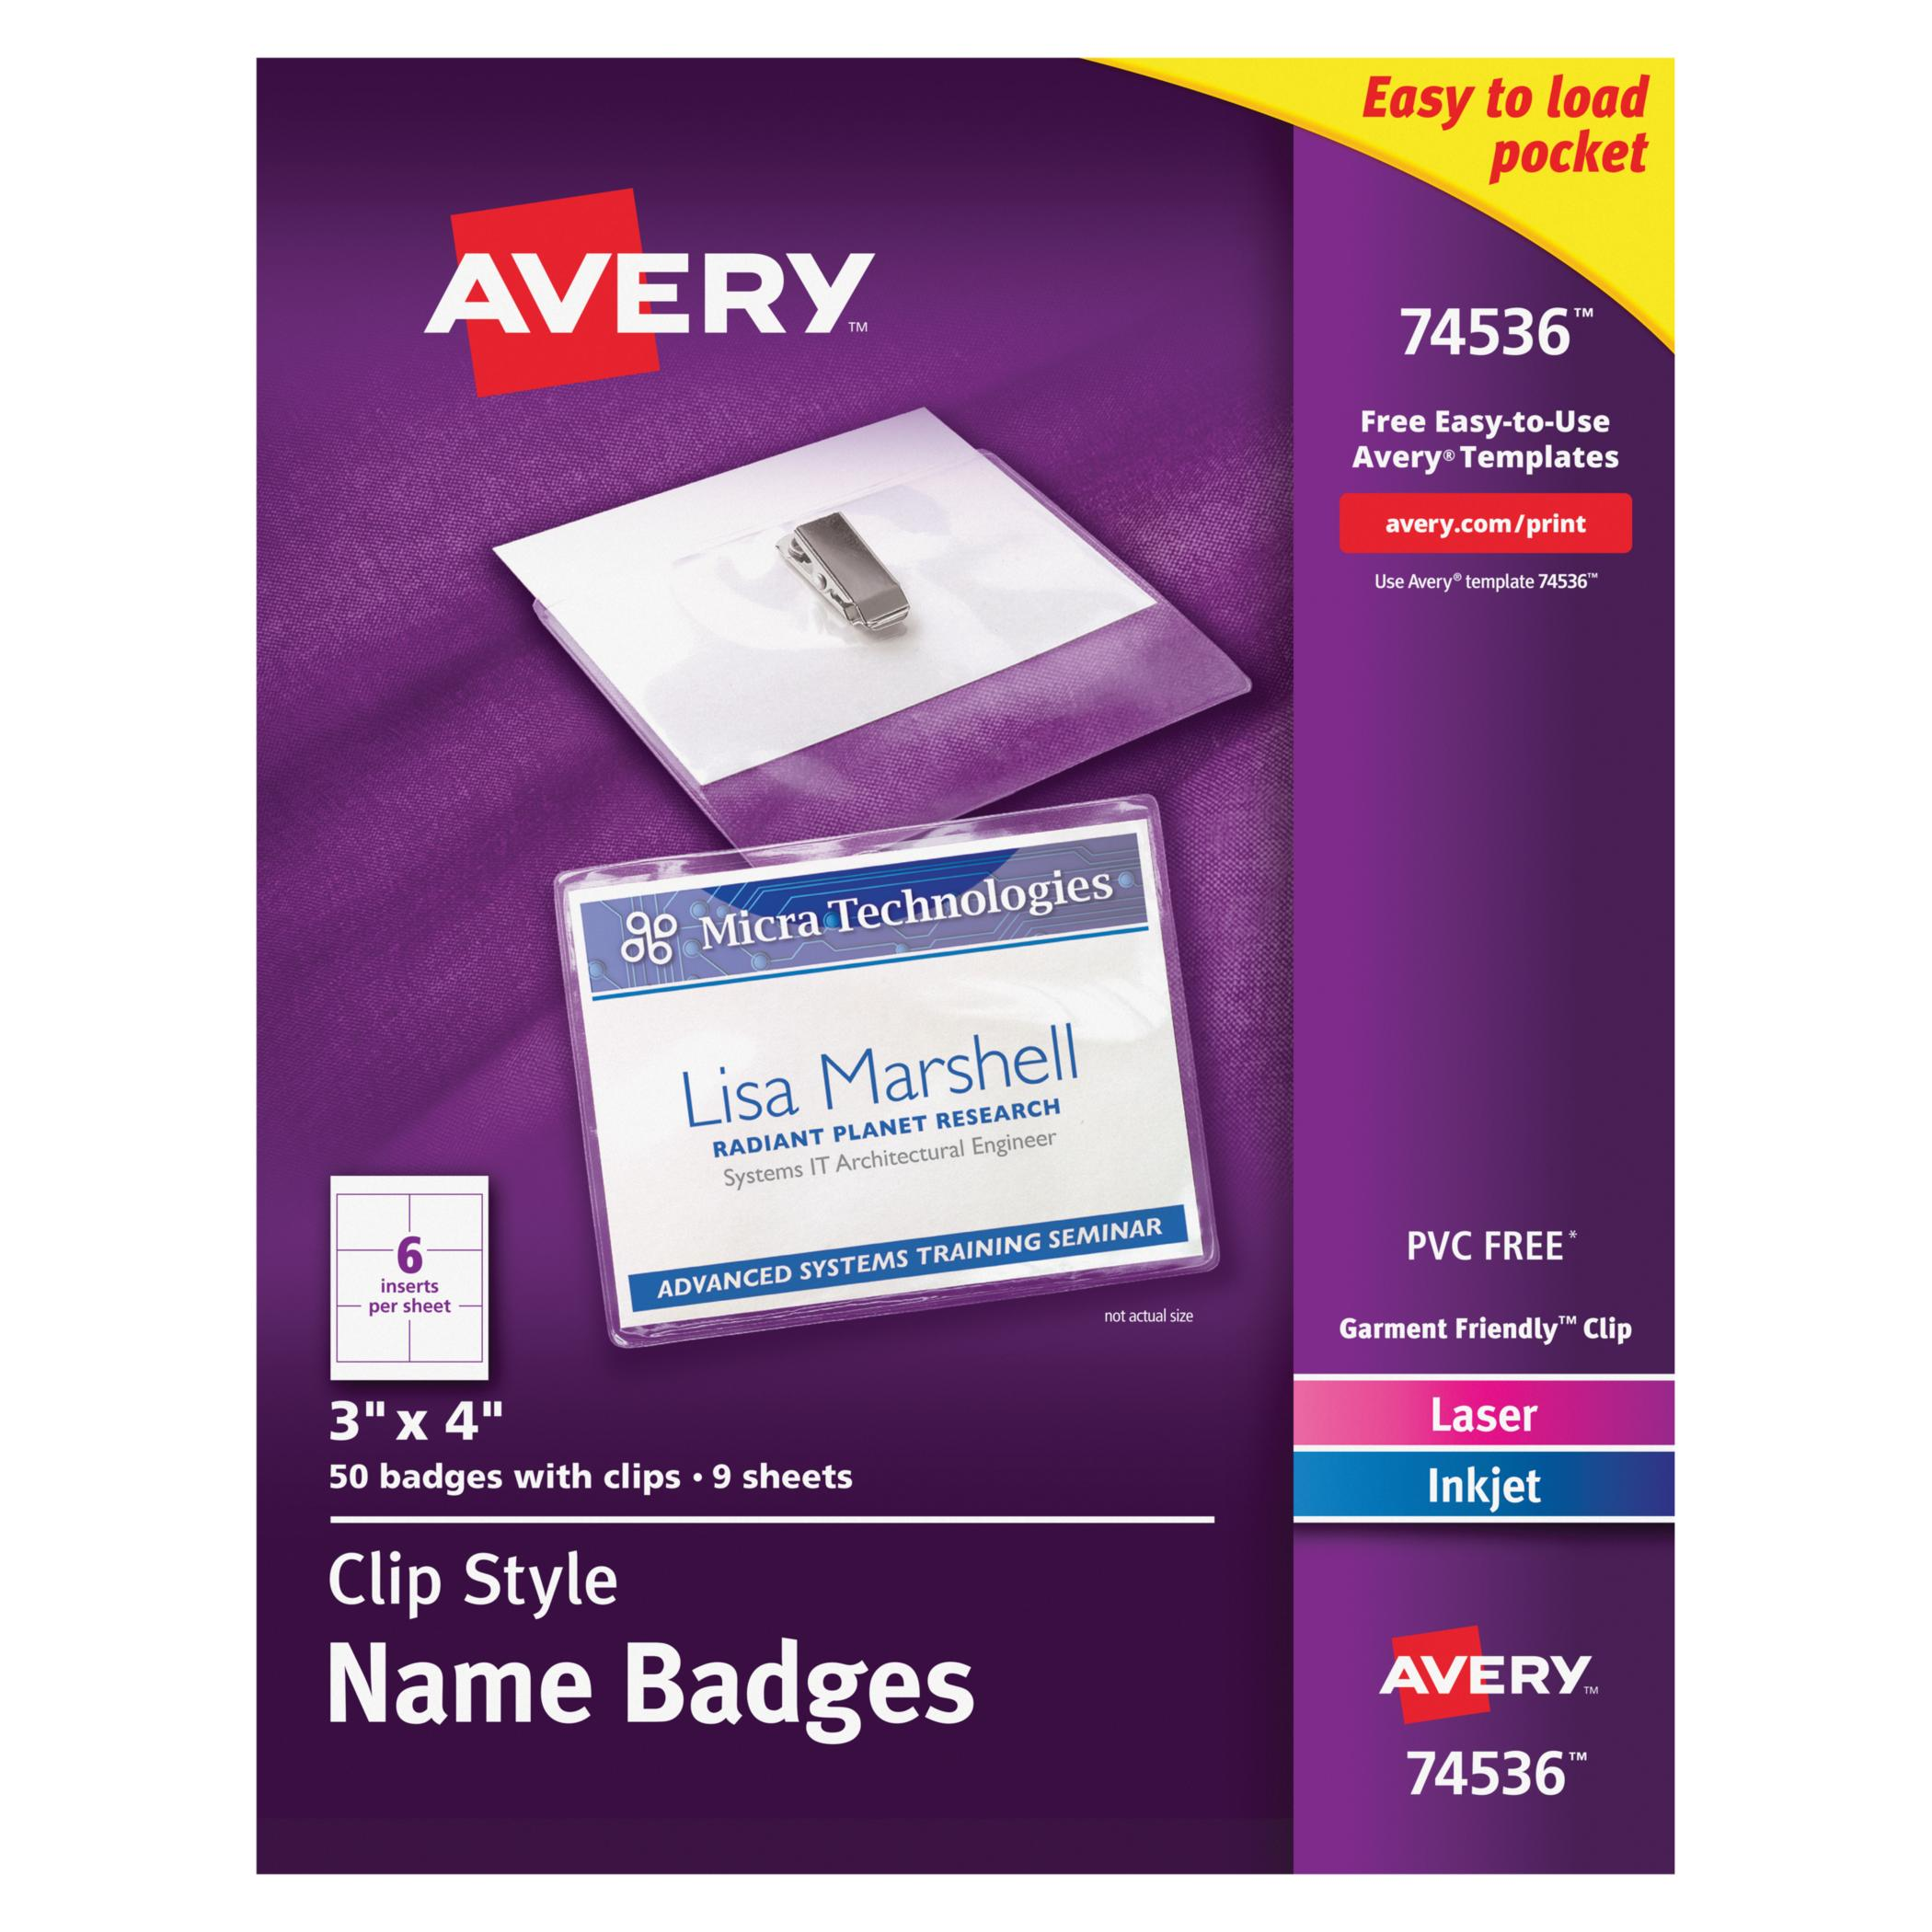 "Avery Garment Friendly Clip Style Name Badges, 3"" x 4"", White, Top-Loading, 50 Pack (74536)"